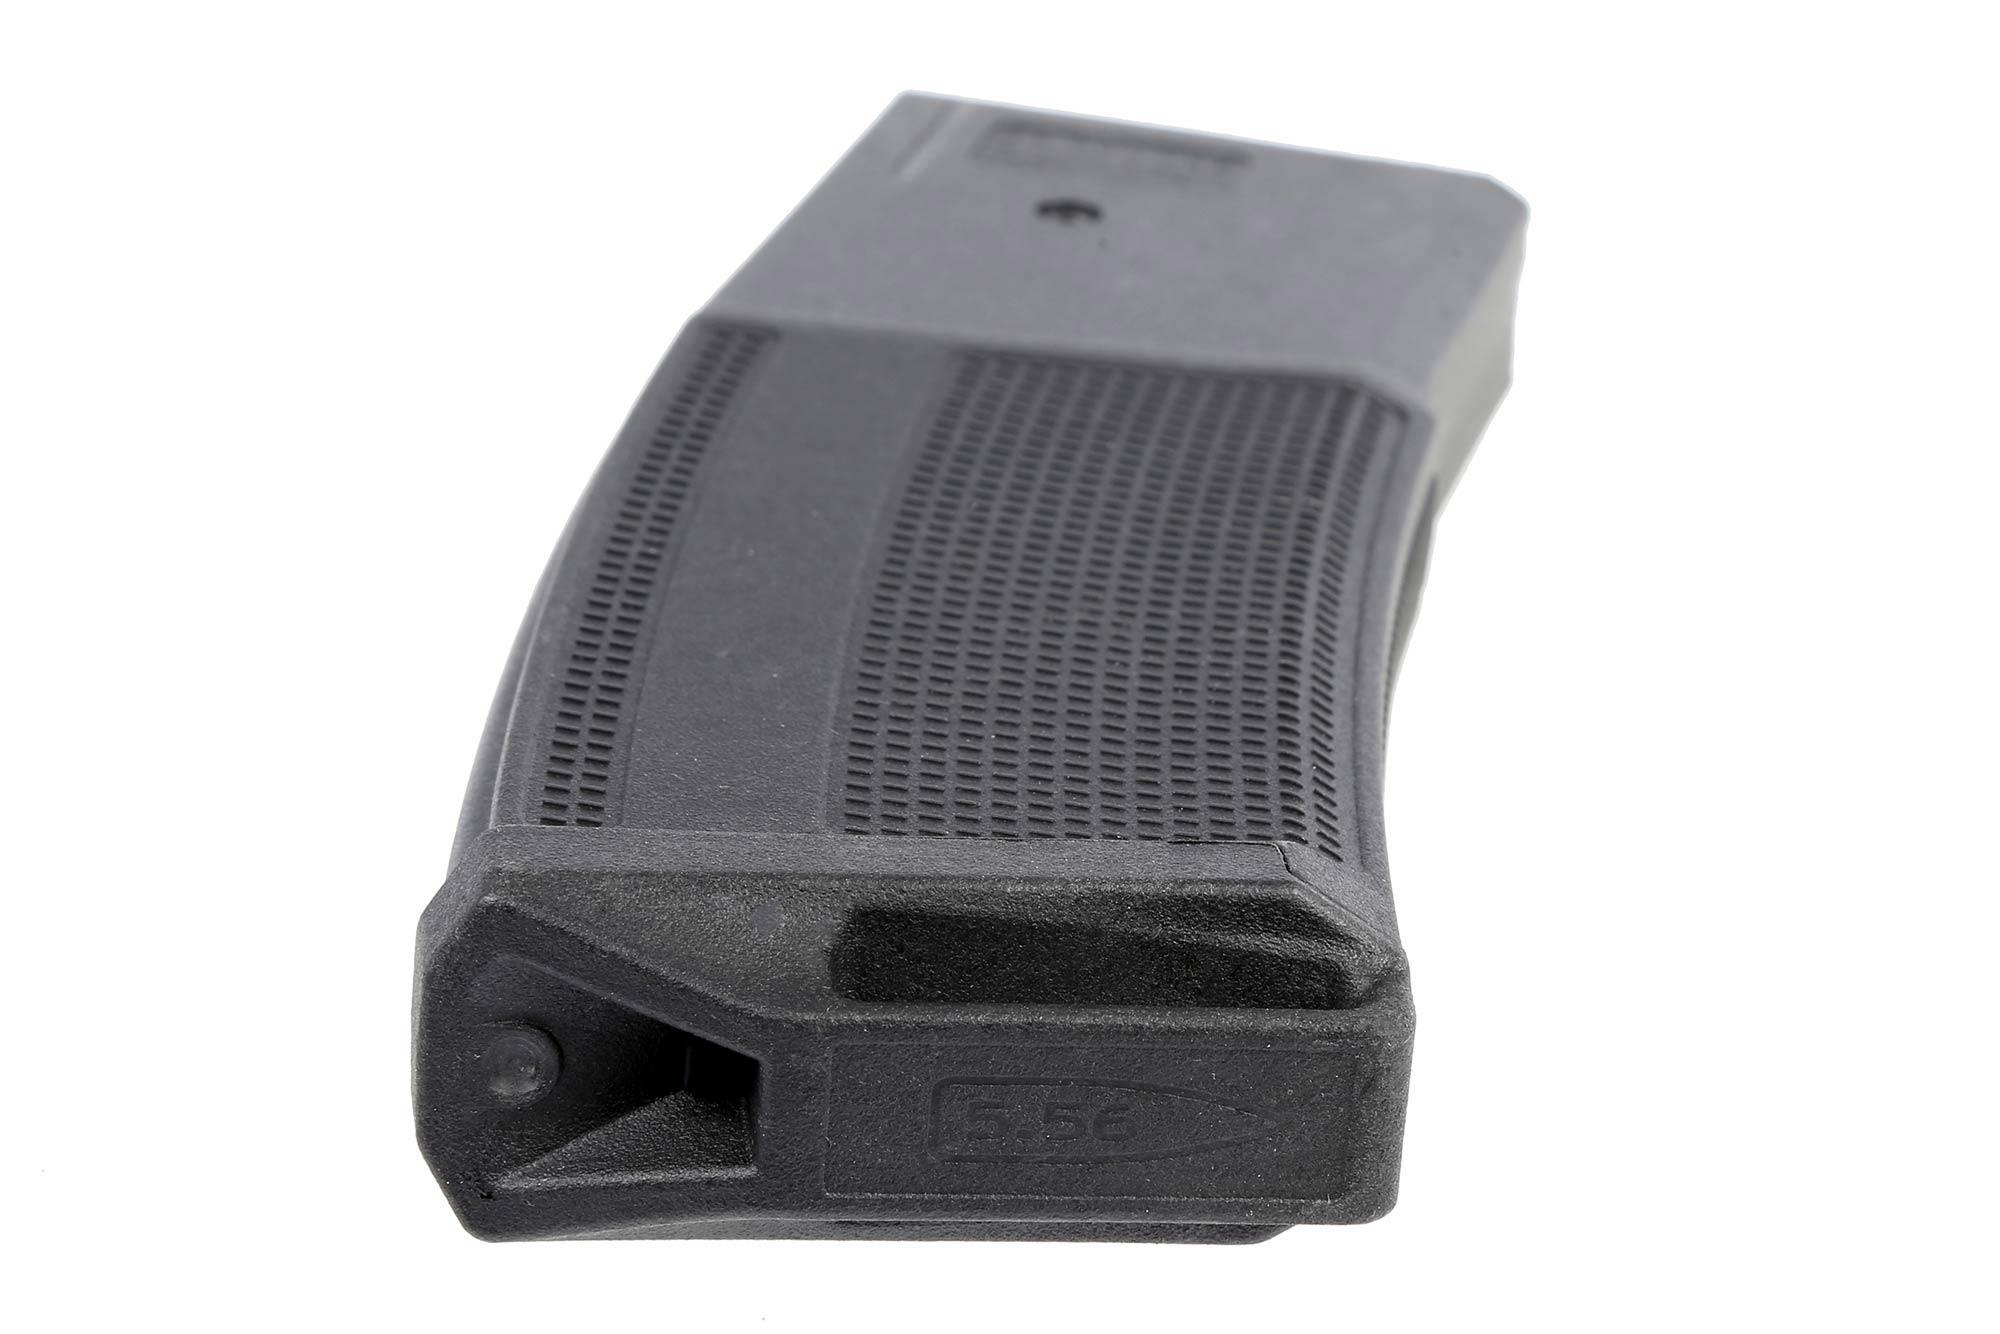 The Daniel Defense 32 round magazine features an impact absorbing baseplate